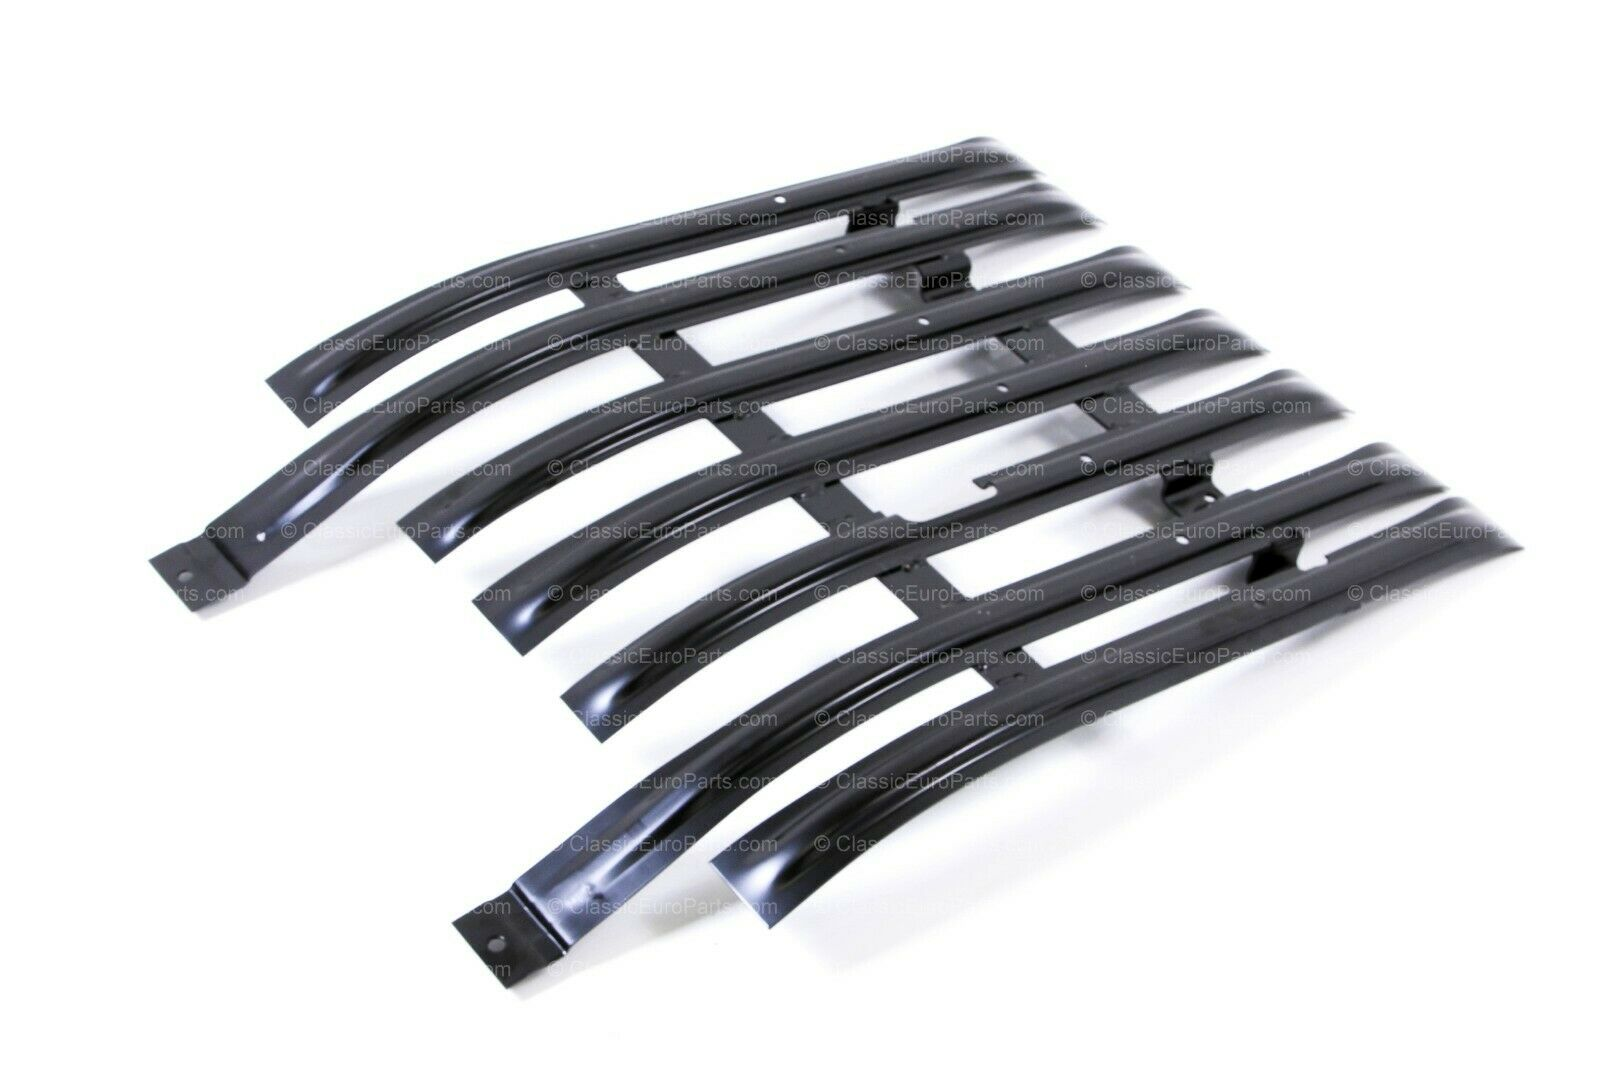 Oil Pan Guard For E30 Classiceuroparts